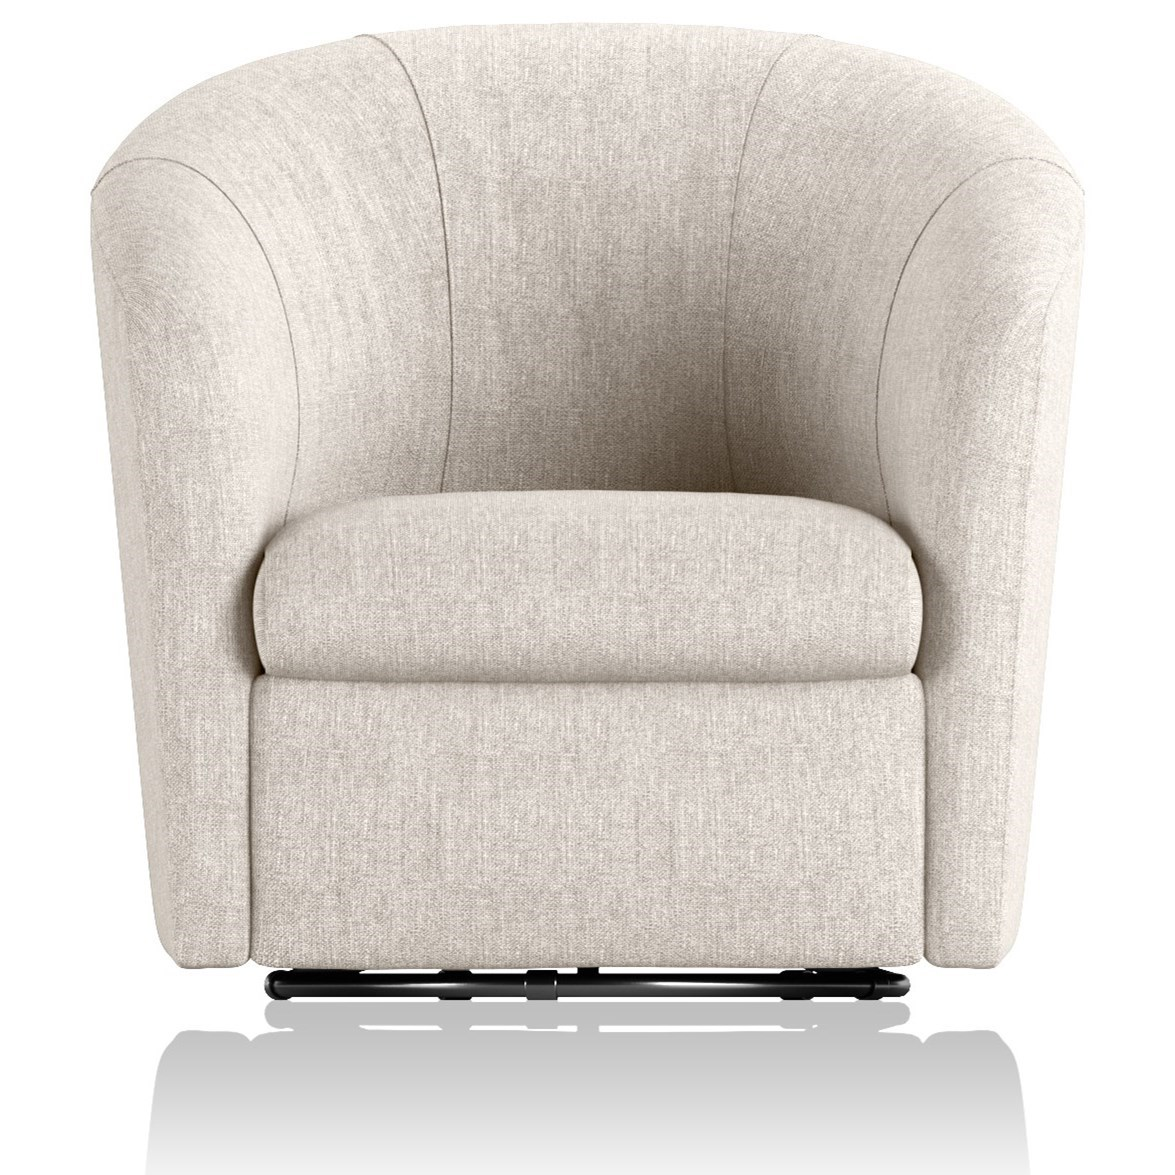 A835 Swivel Chair by Natuzzi Editions at Williams & Kay